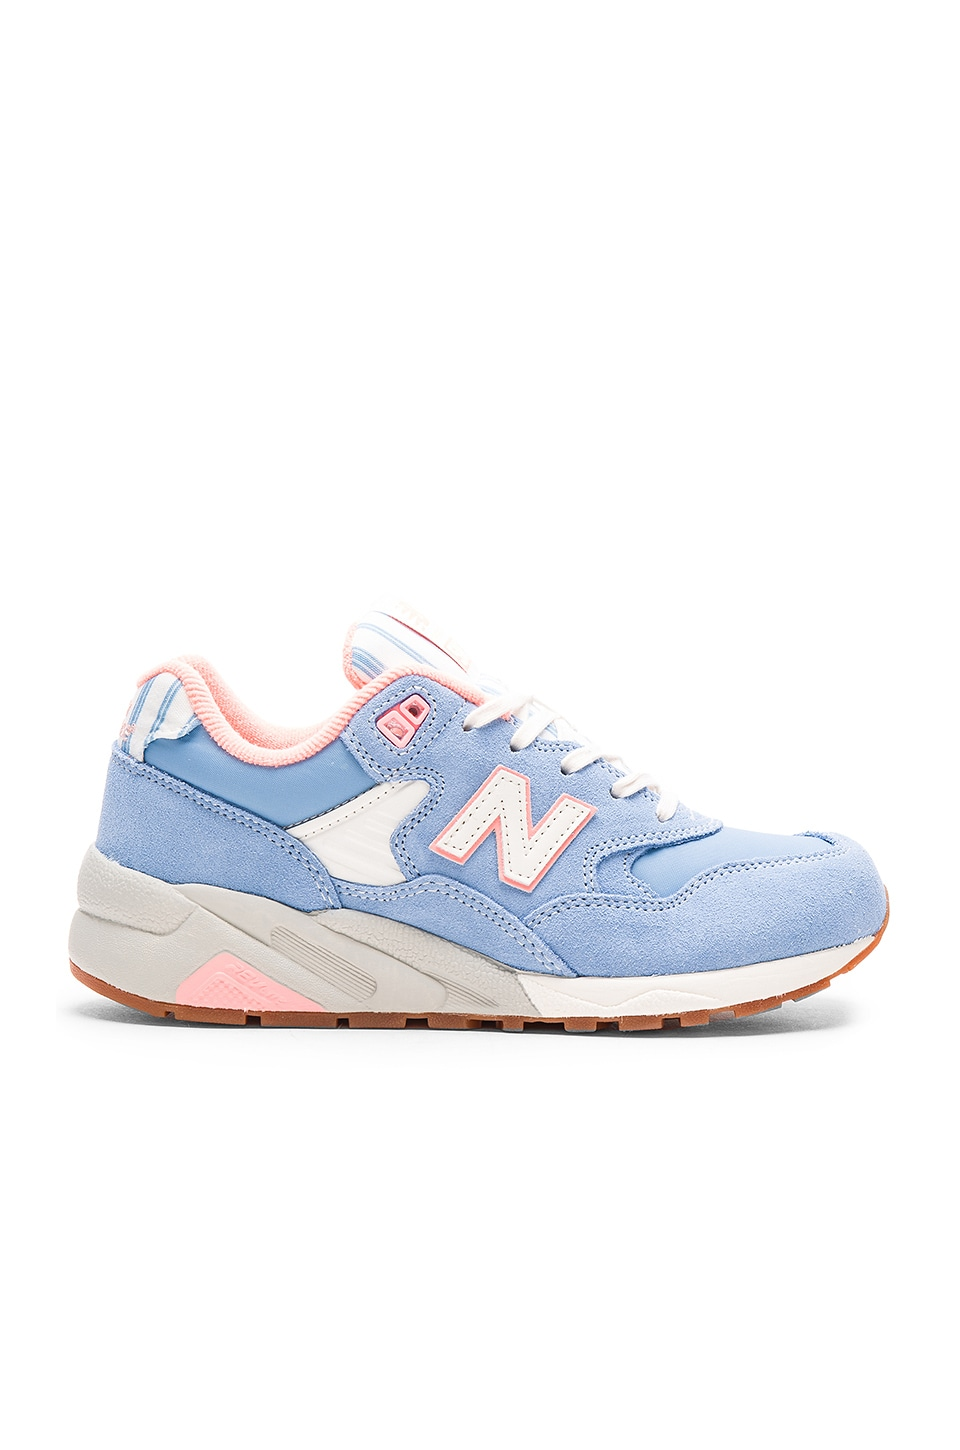 New Balance Seaside Hideaway Sneaker in Light Blue